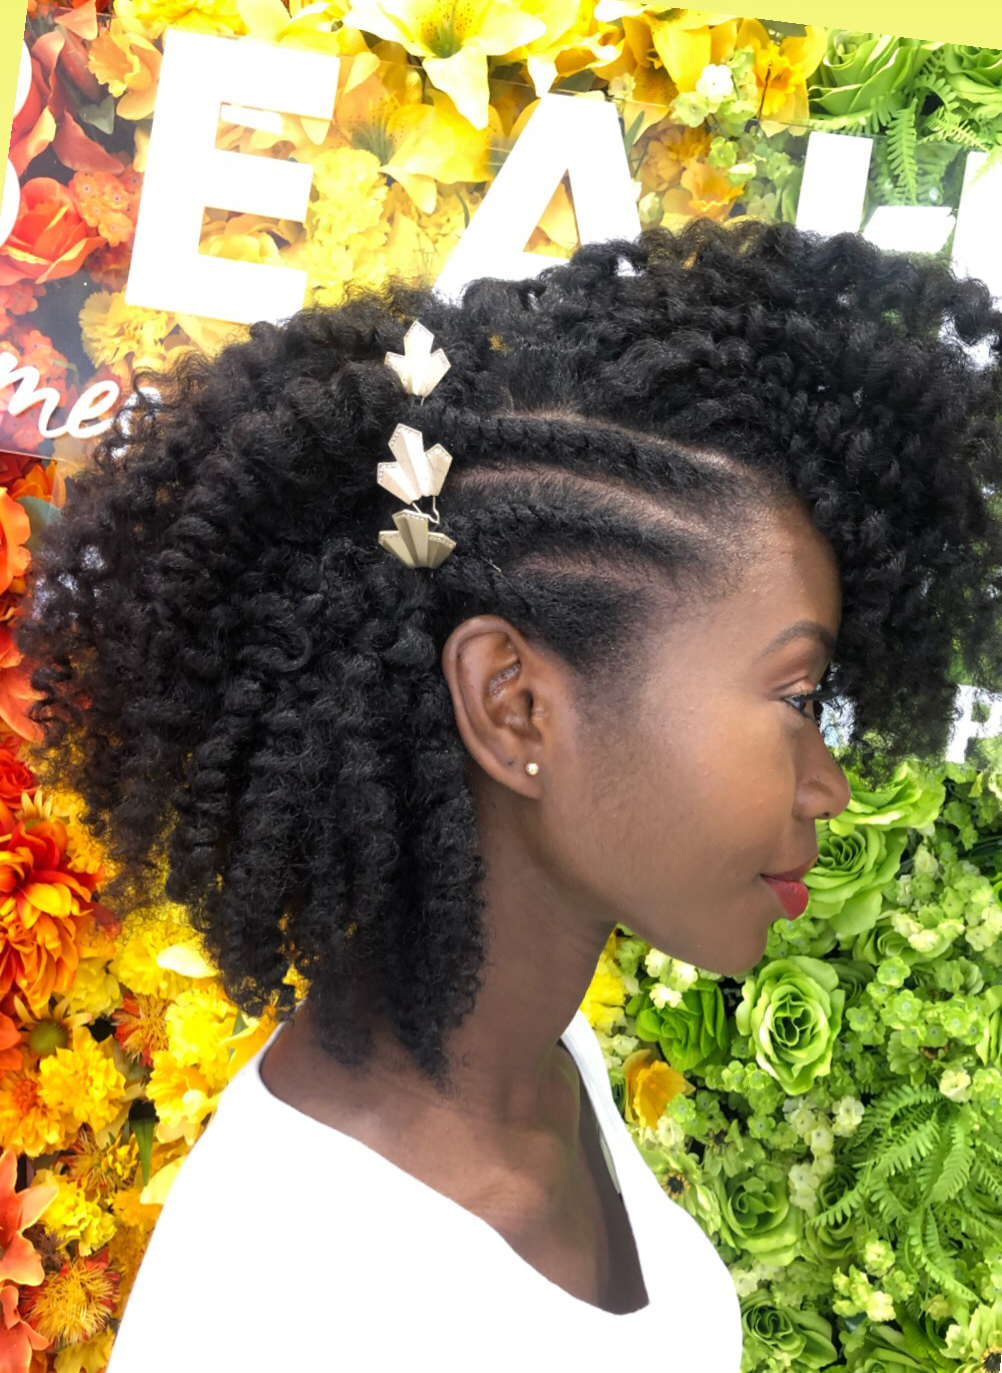 <p><strong>Pekela&rsquo;s finished look includes a few twists left intact and adorned with gold leaves.</strong></p>